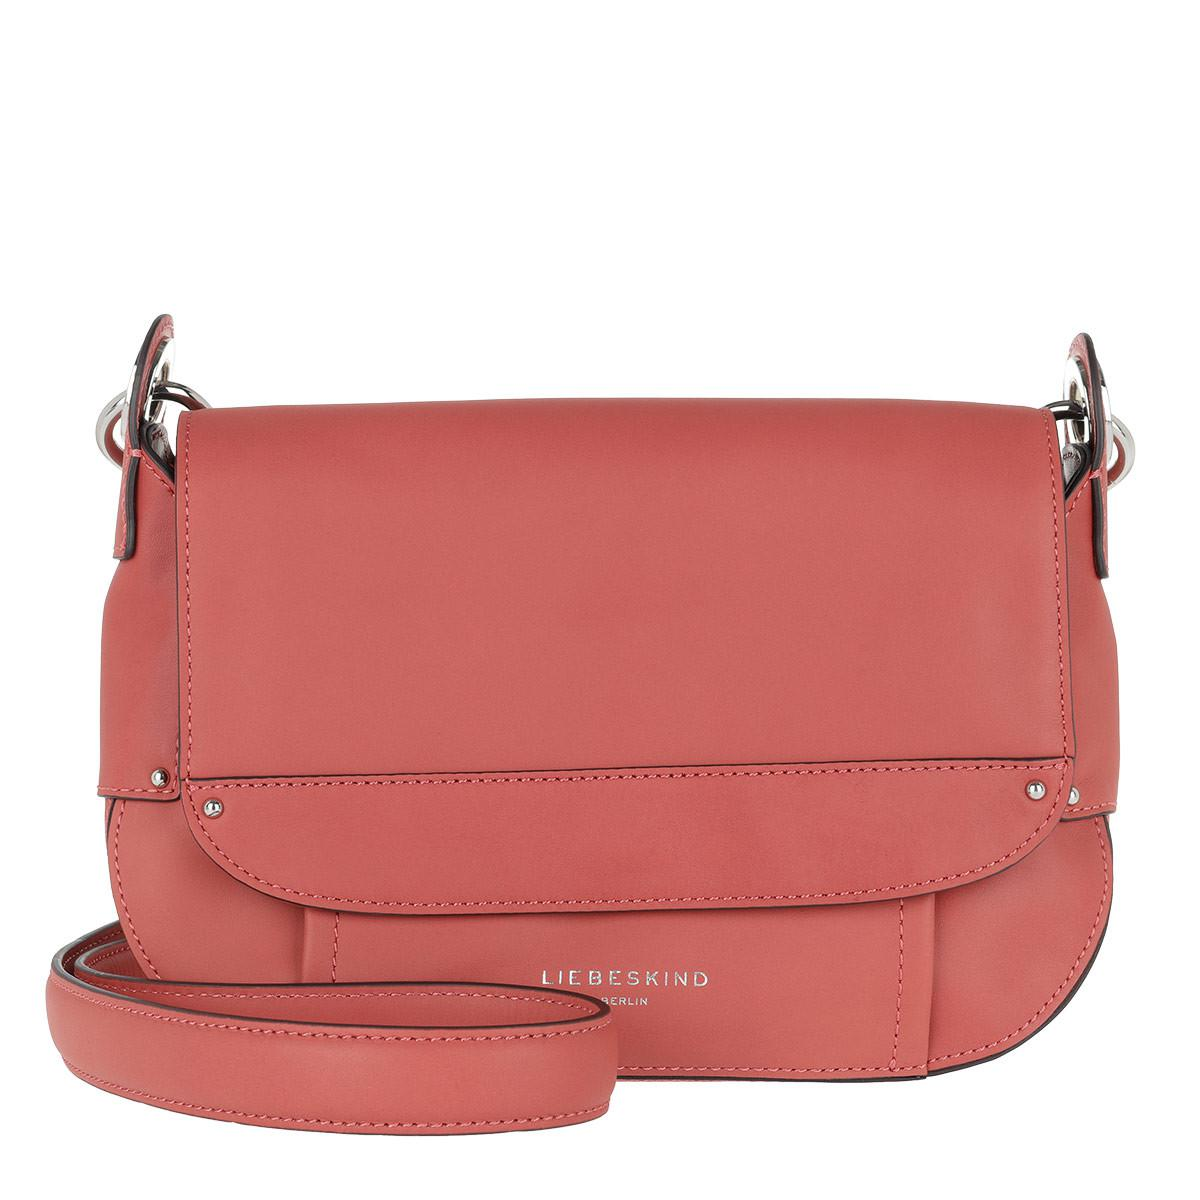 bbff9c6a6 Liebeskind Berlin Lima Gromme Crossbody Bag Coral Pink in Pink - Lyst